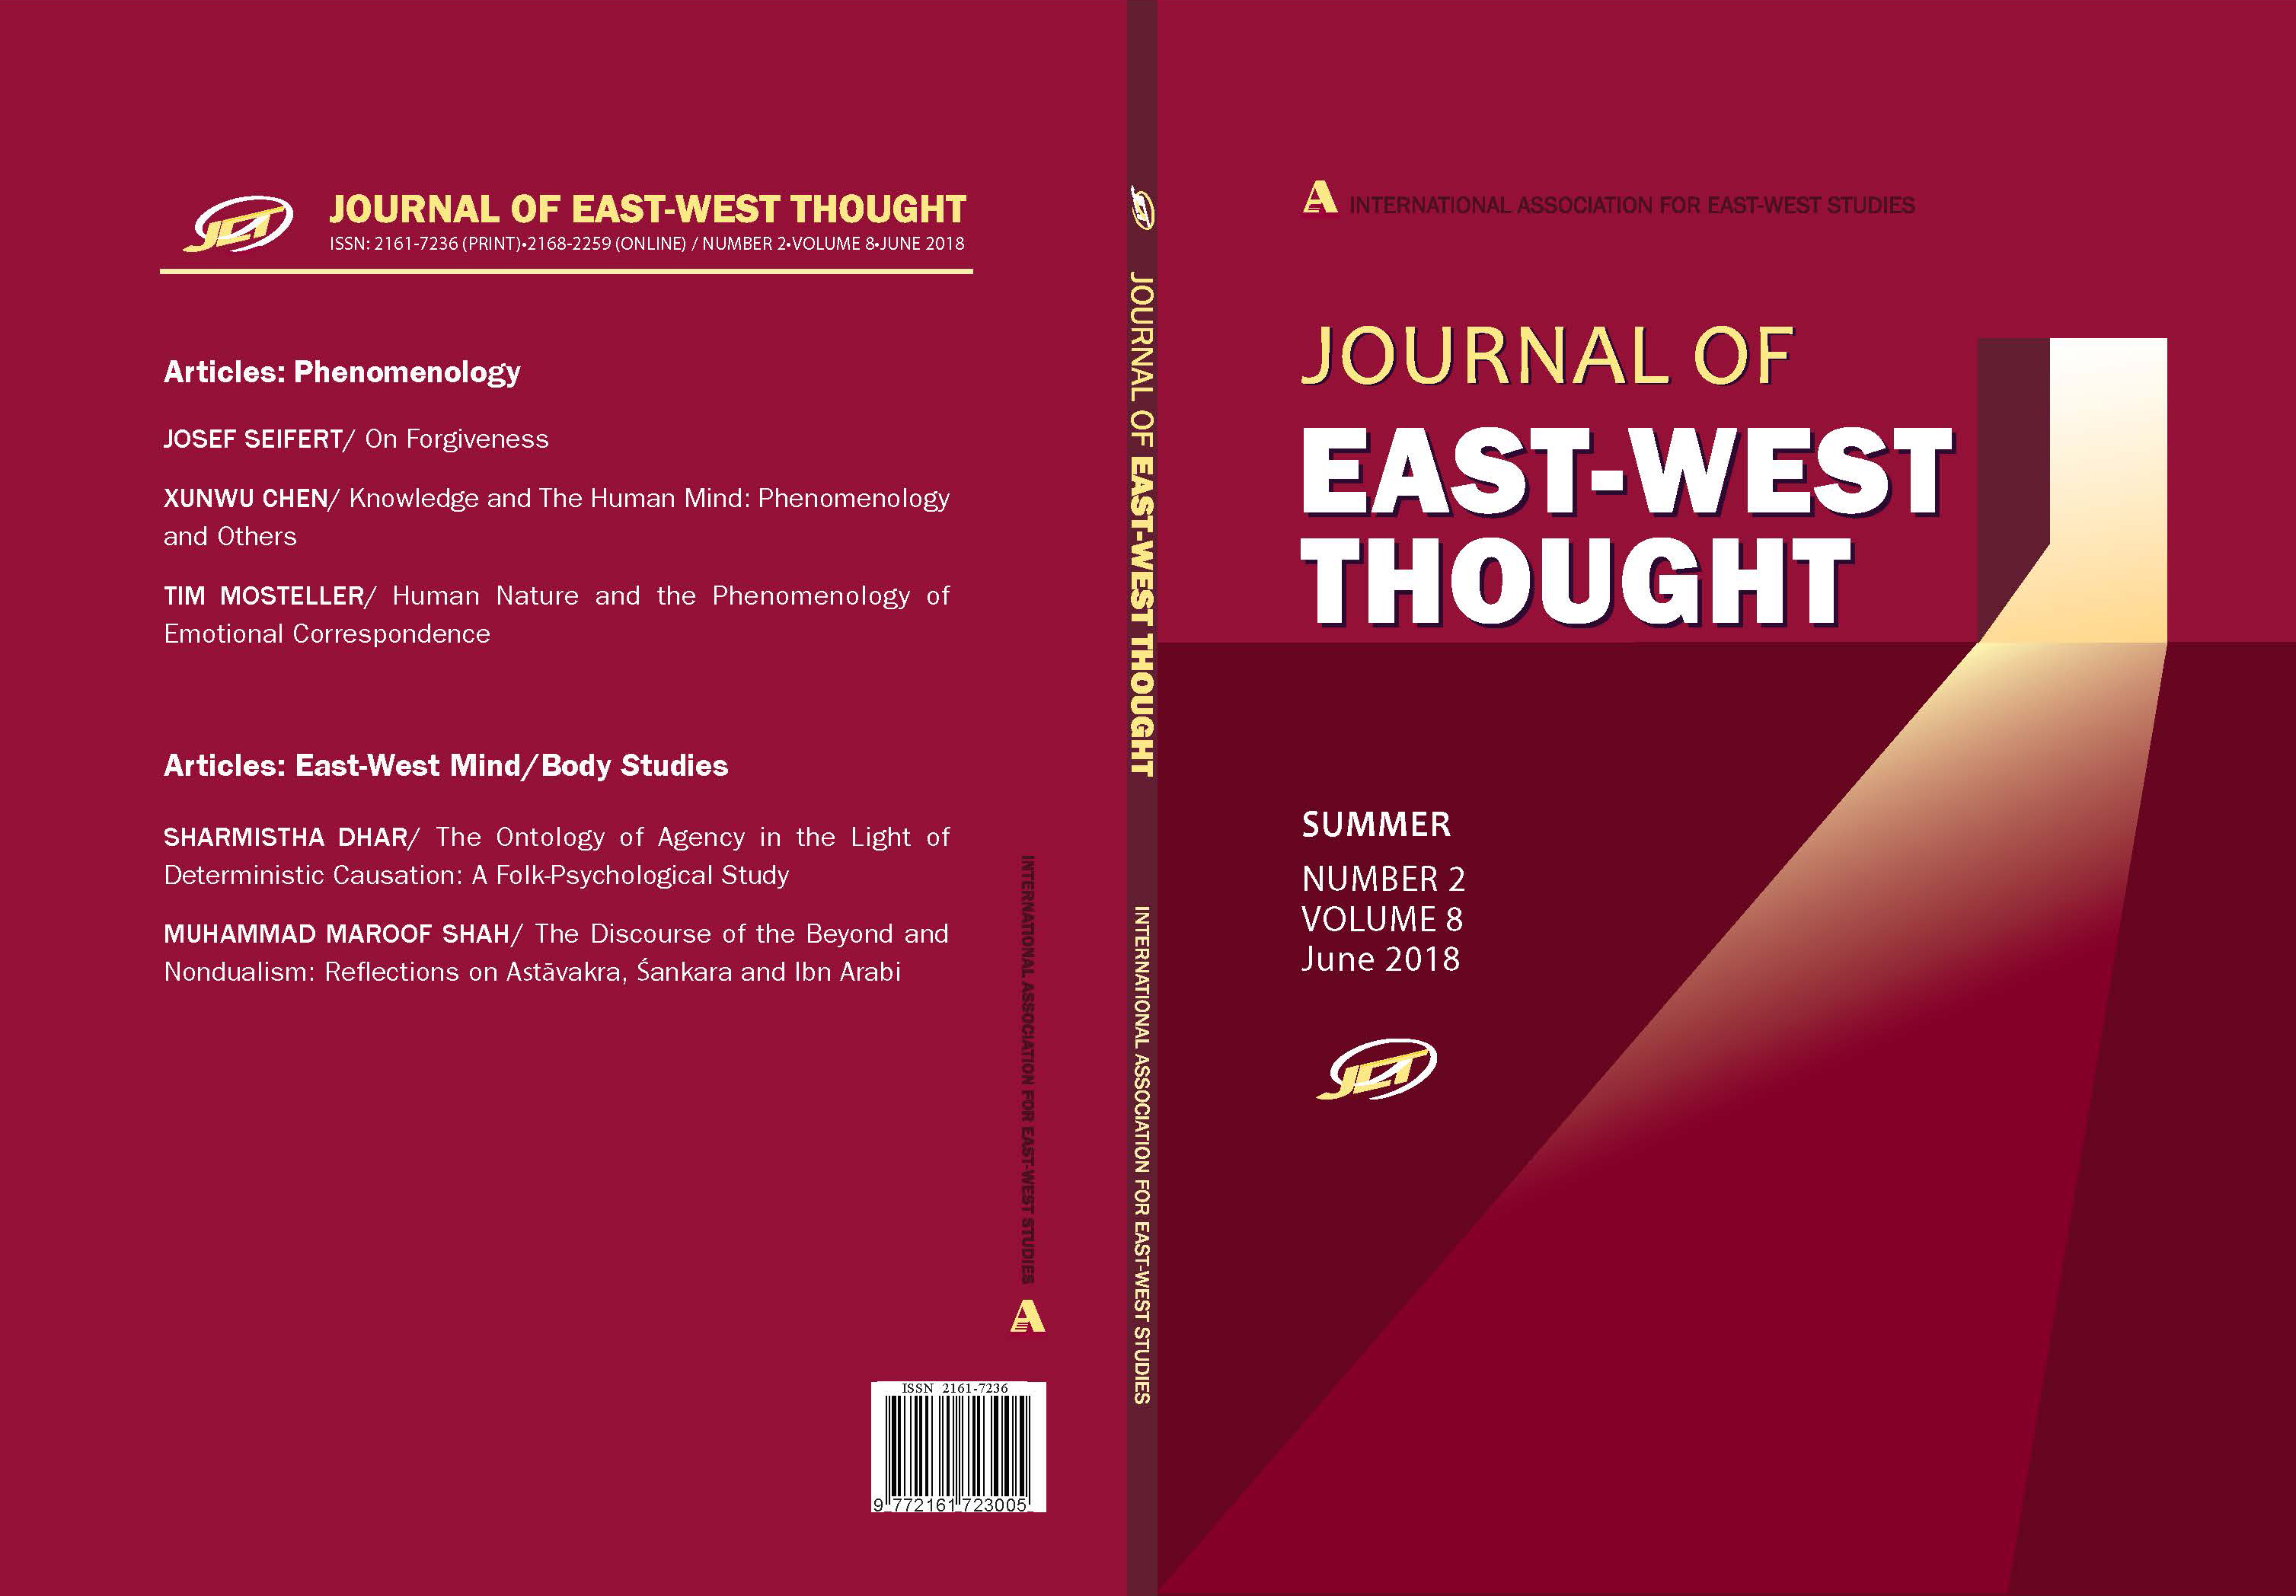 Front and back cover of the Journal of East West Thought Volume 8, Number 3, 2018